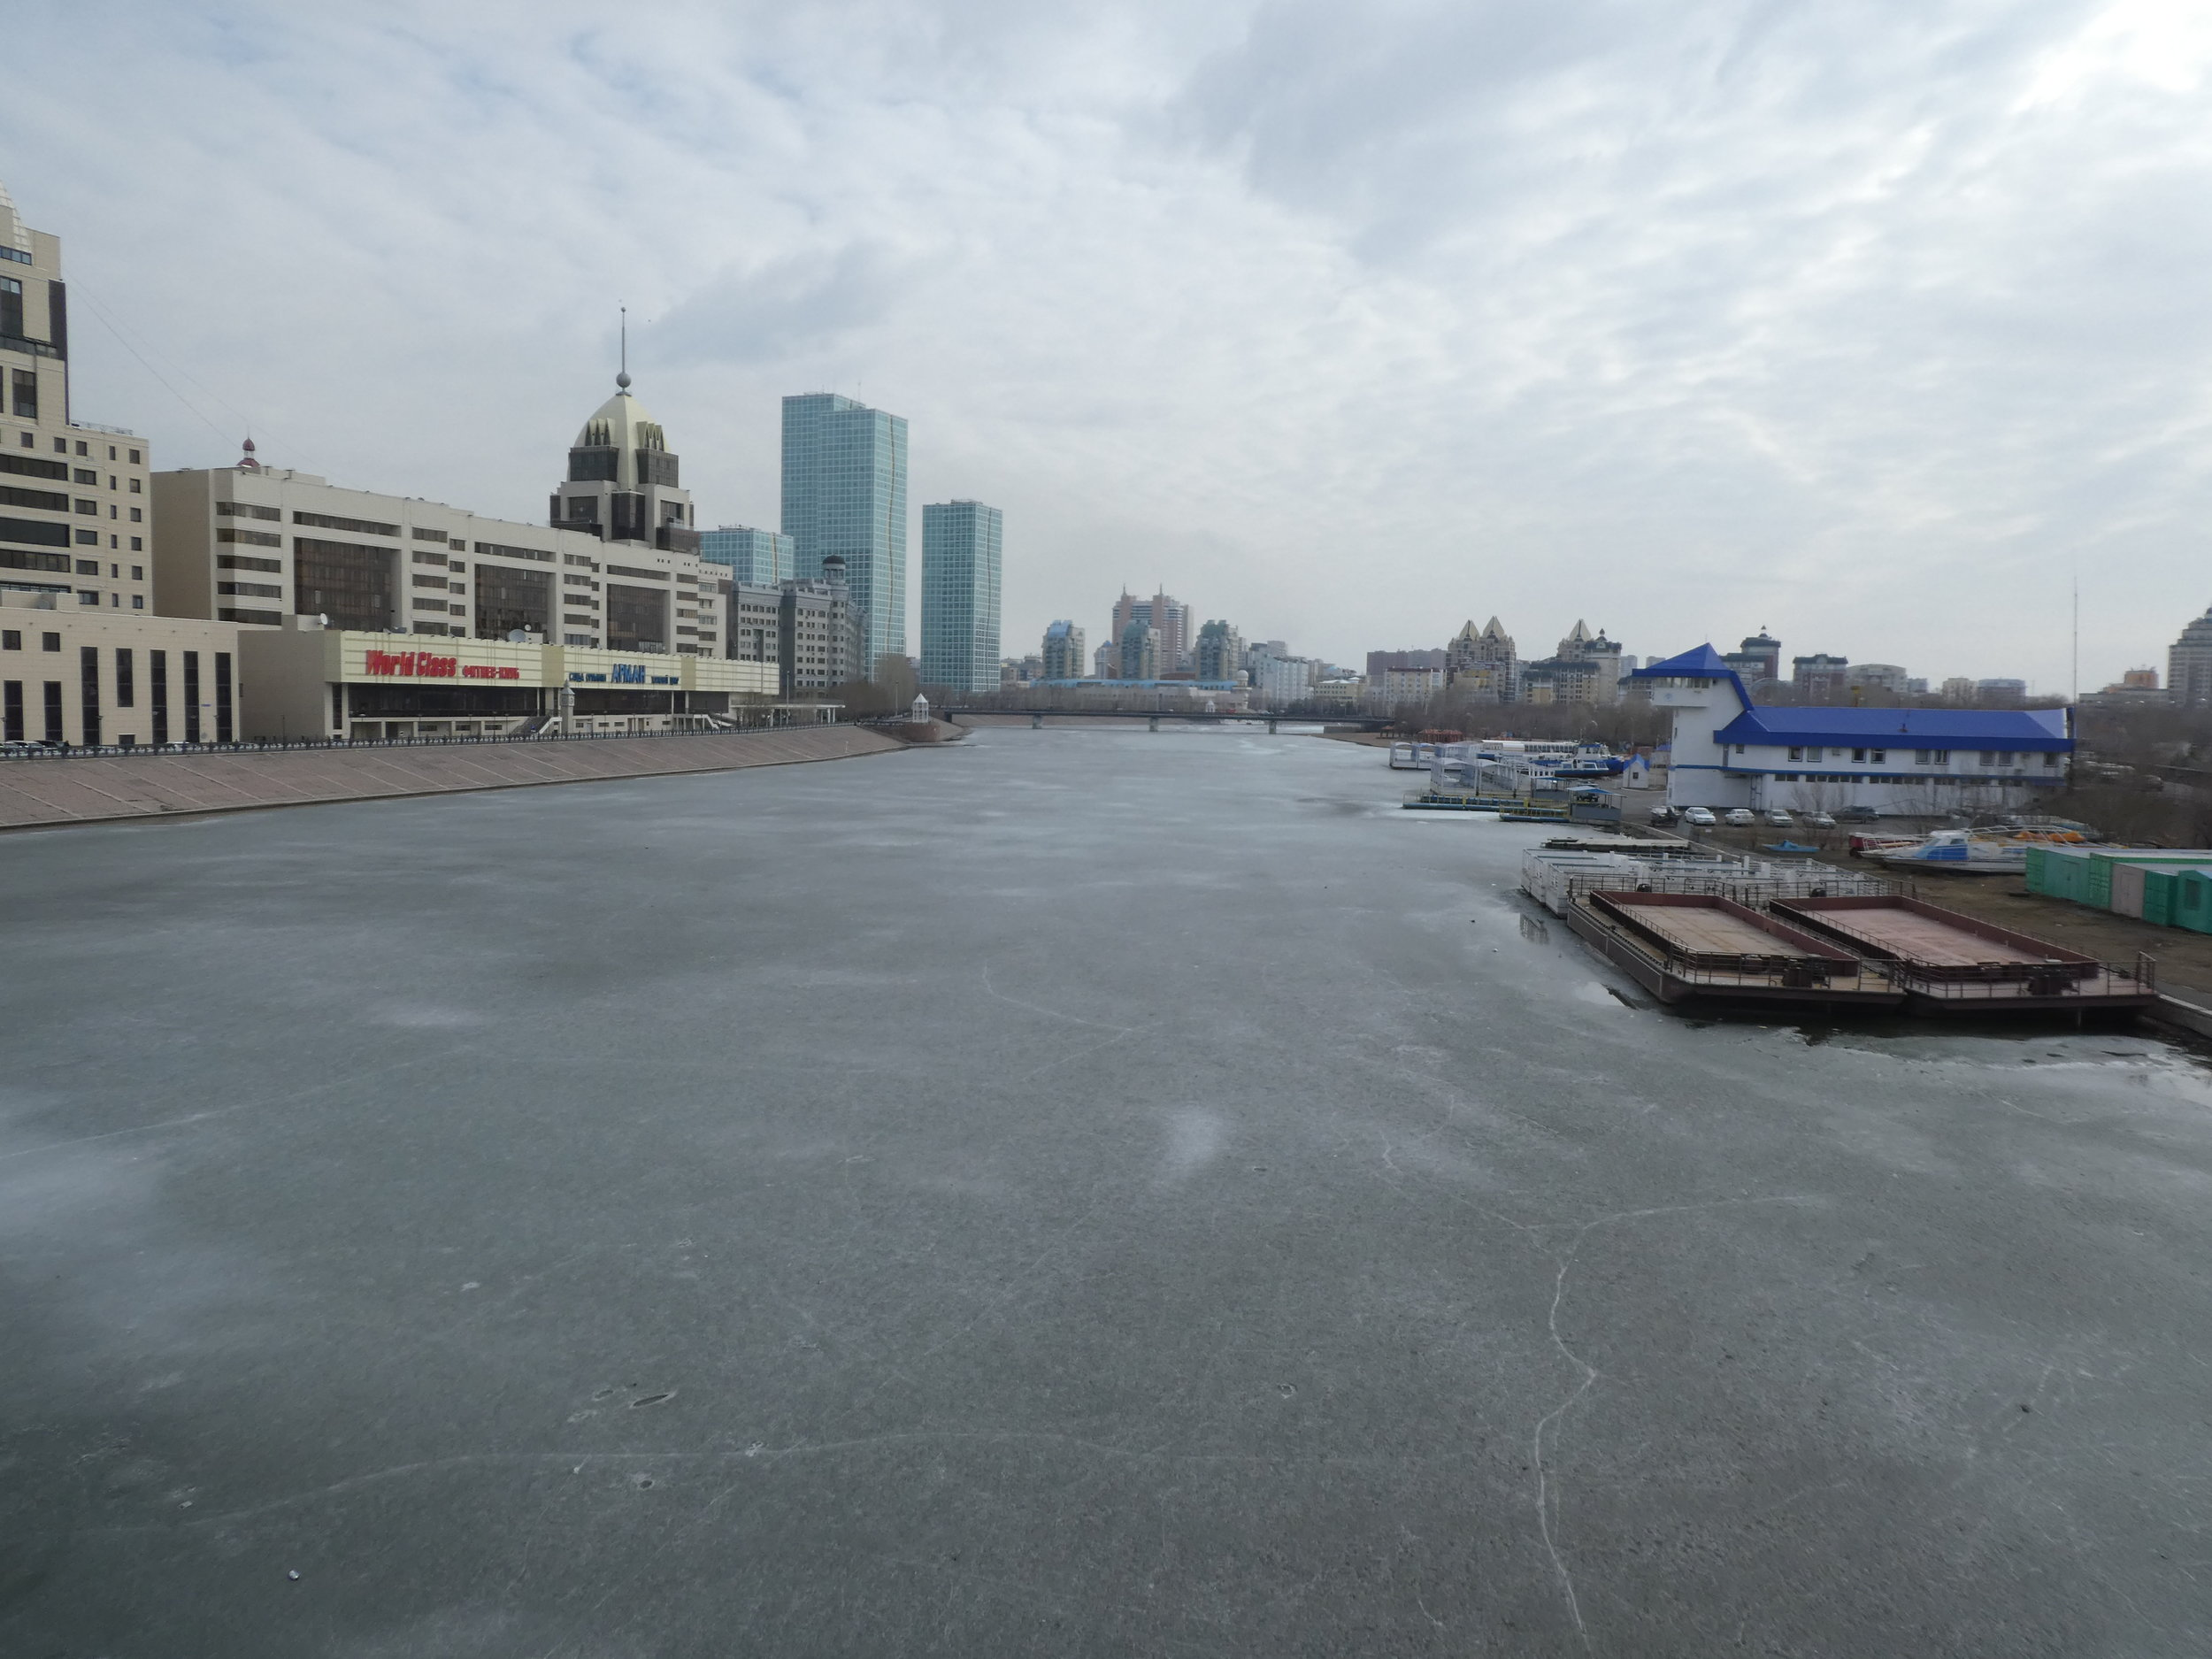 The river still frozen. Coming from Western and South Western Europe, this was a big step back into winter.